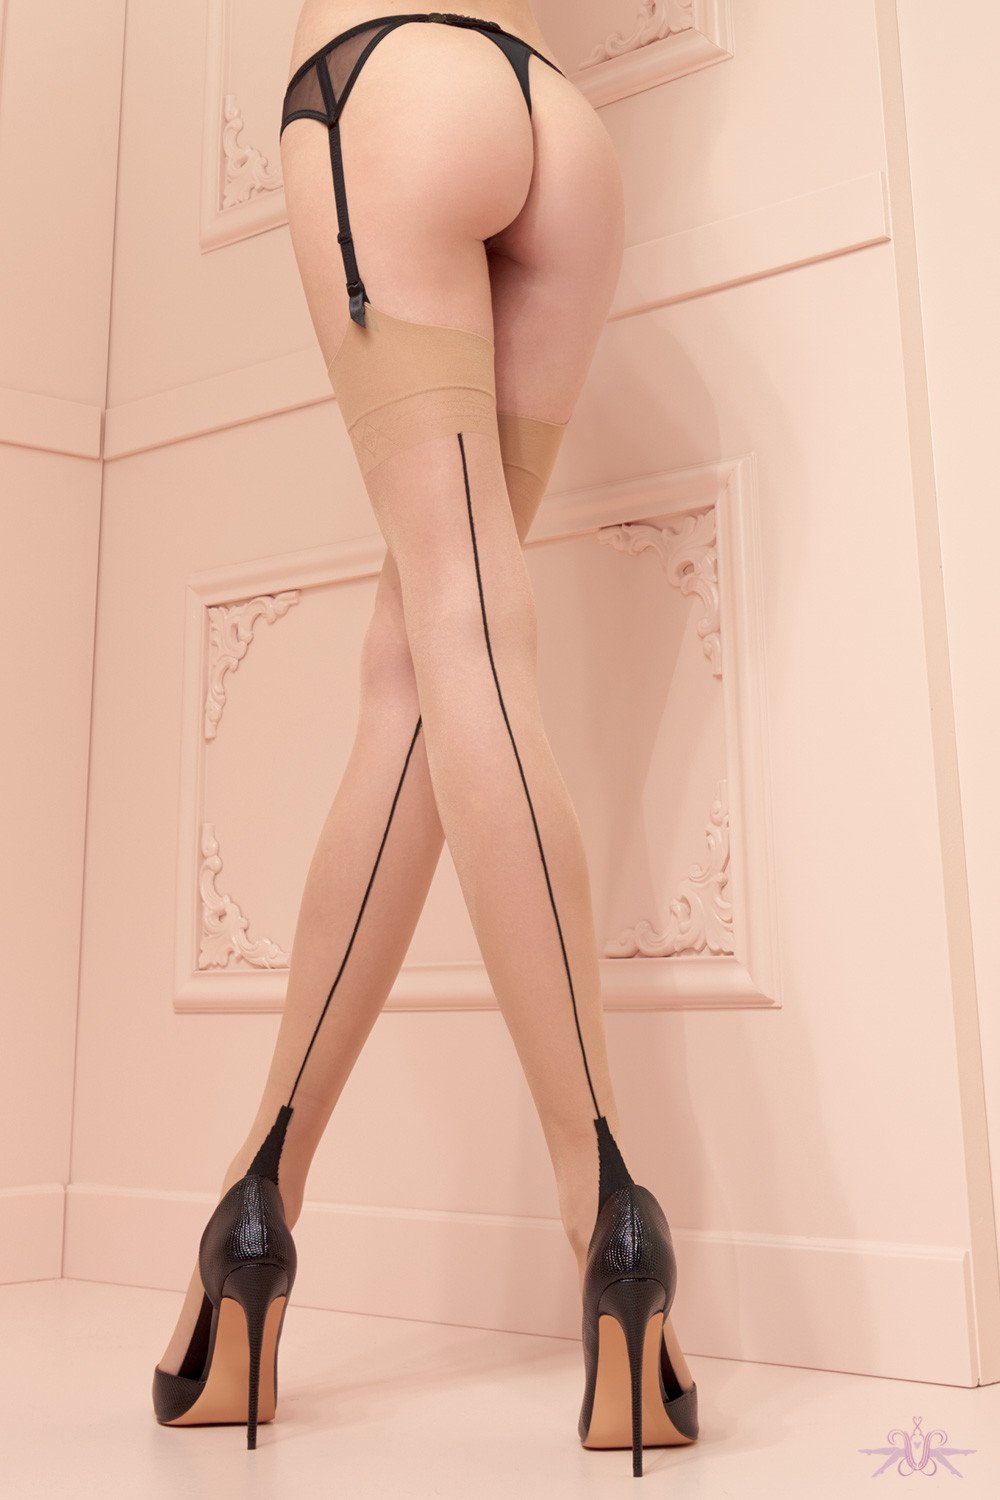 Trasparenze Pennac Stockings - The Hosiery Box